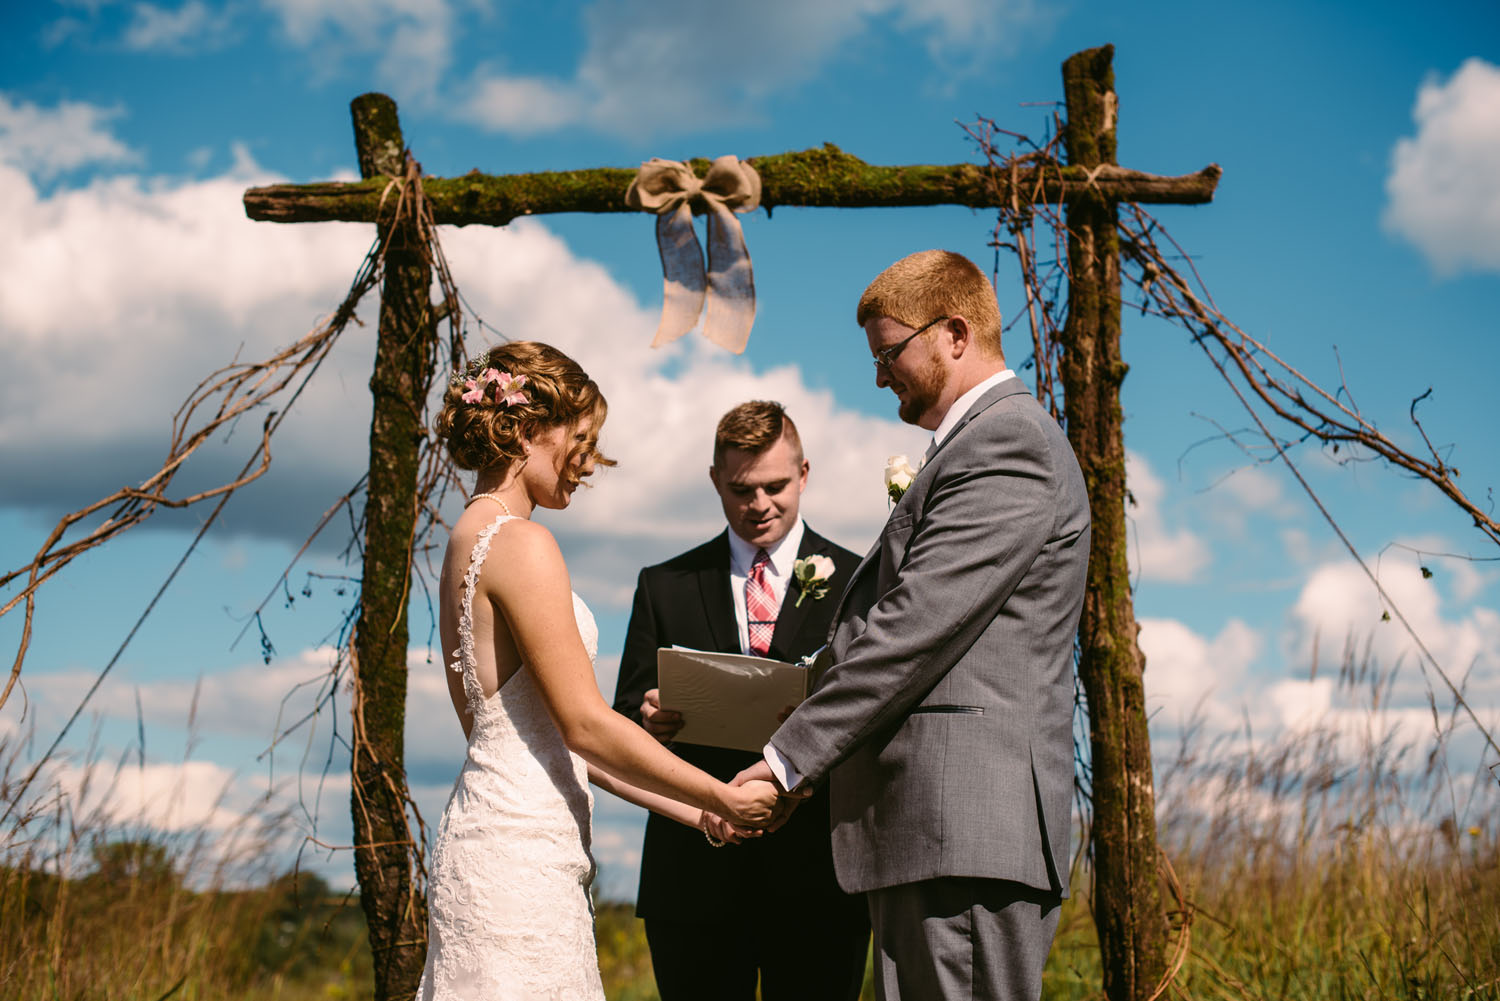 creative-midwest-outdoor-wedding-photographer.jpg